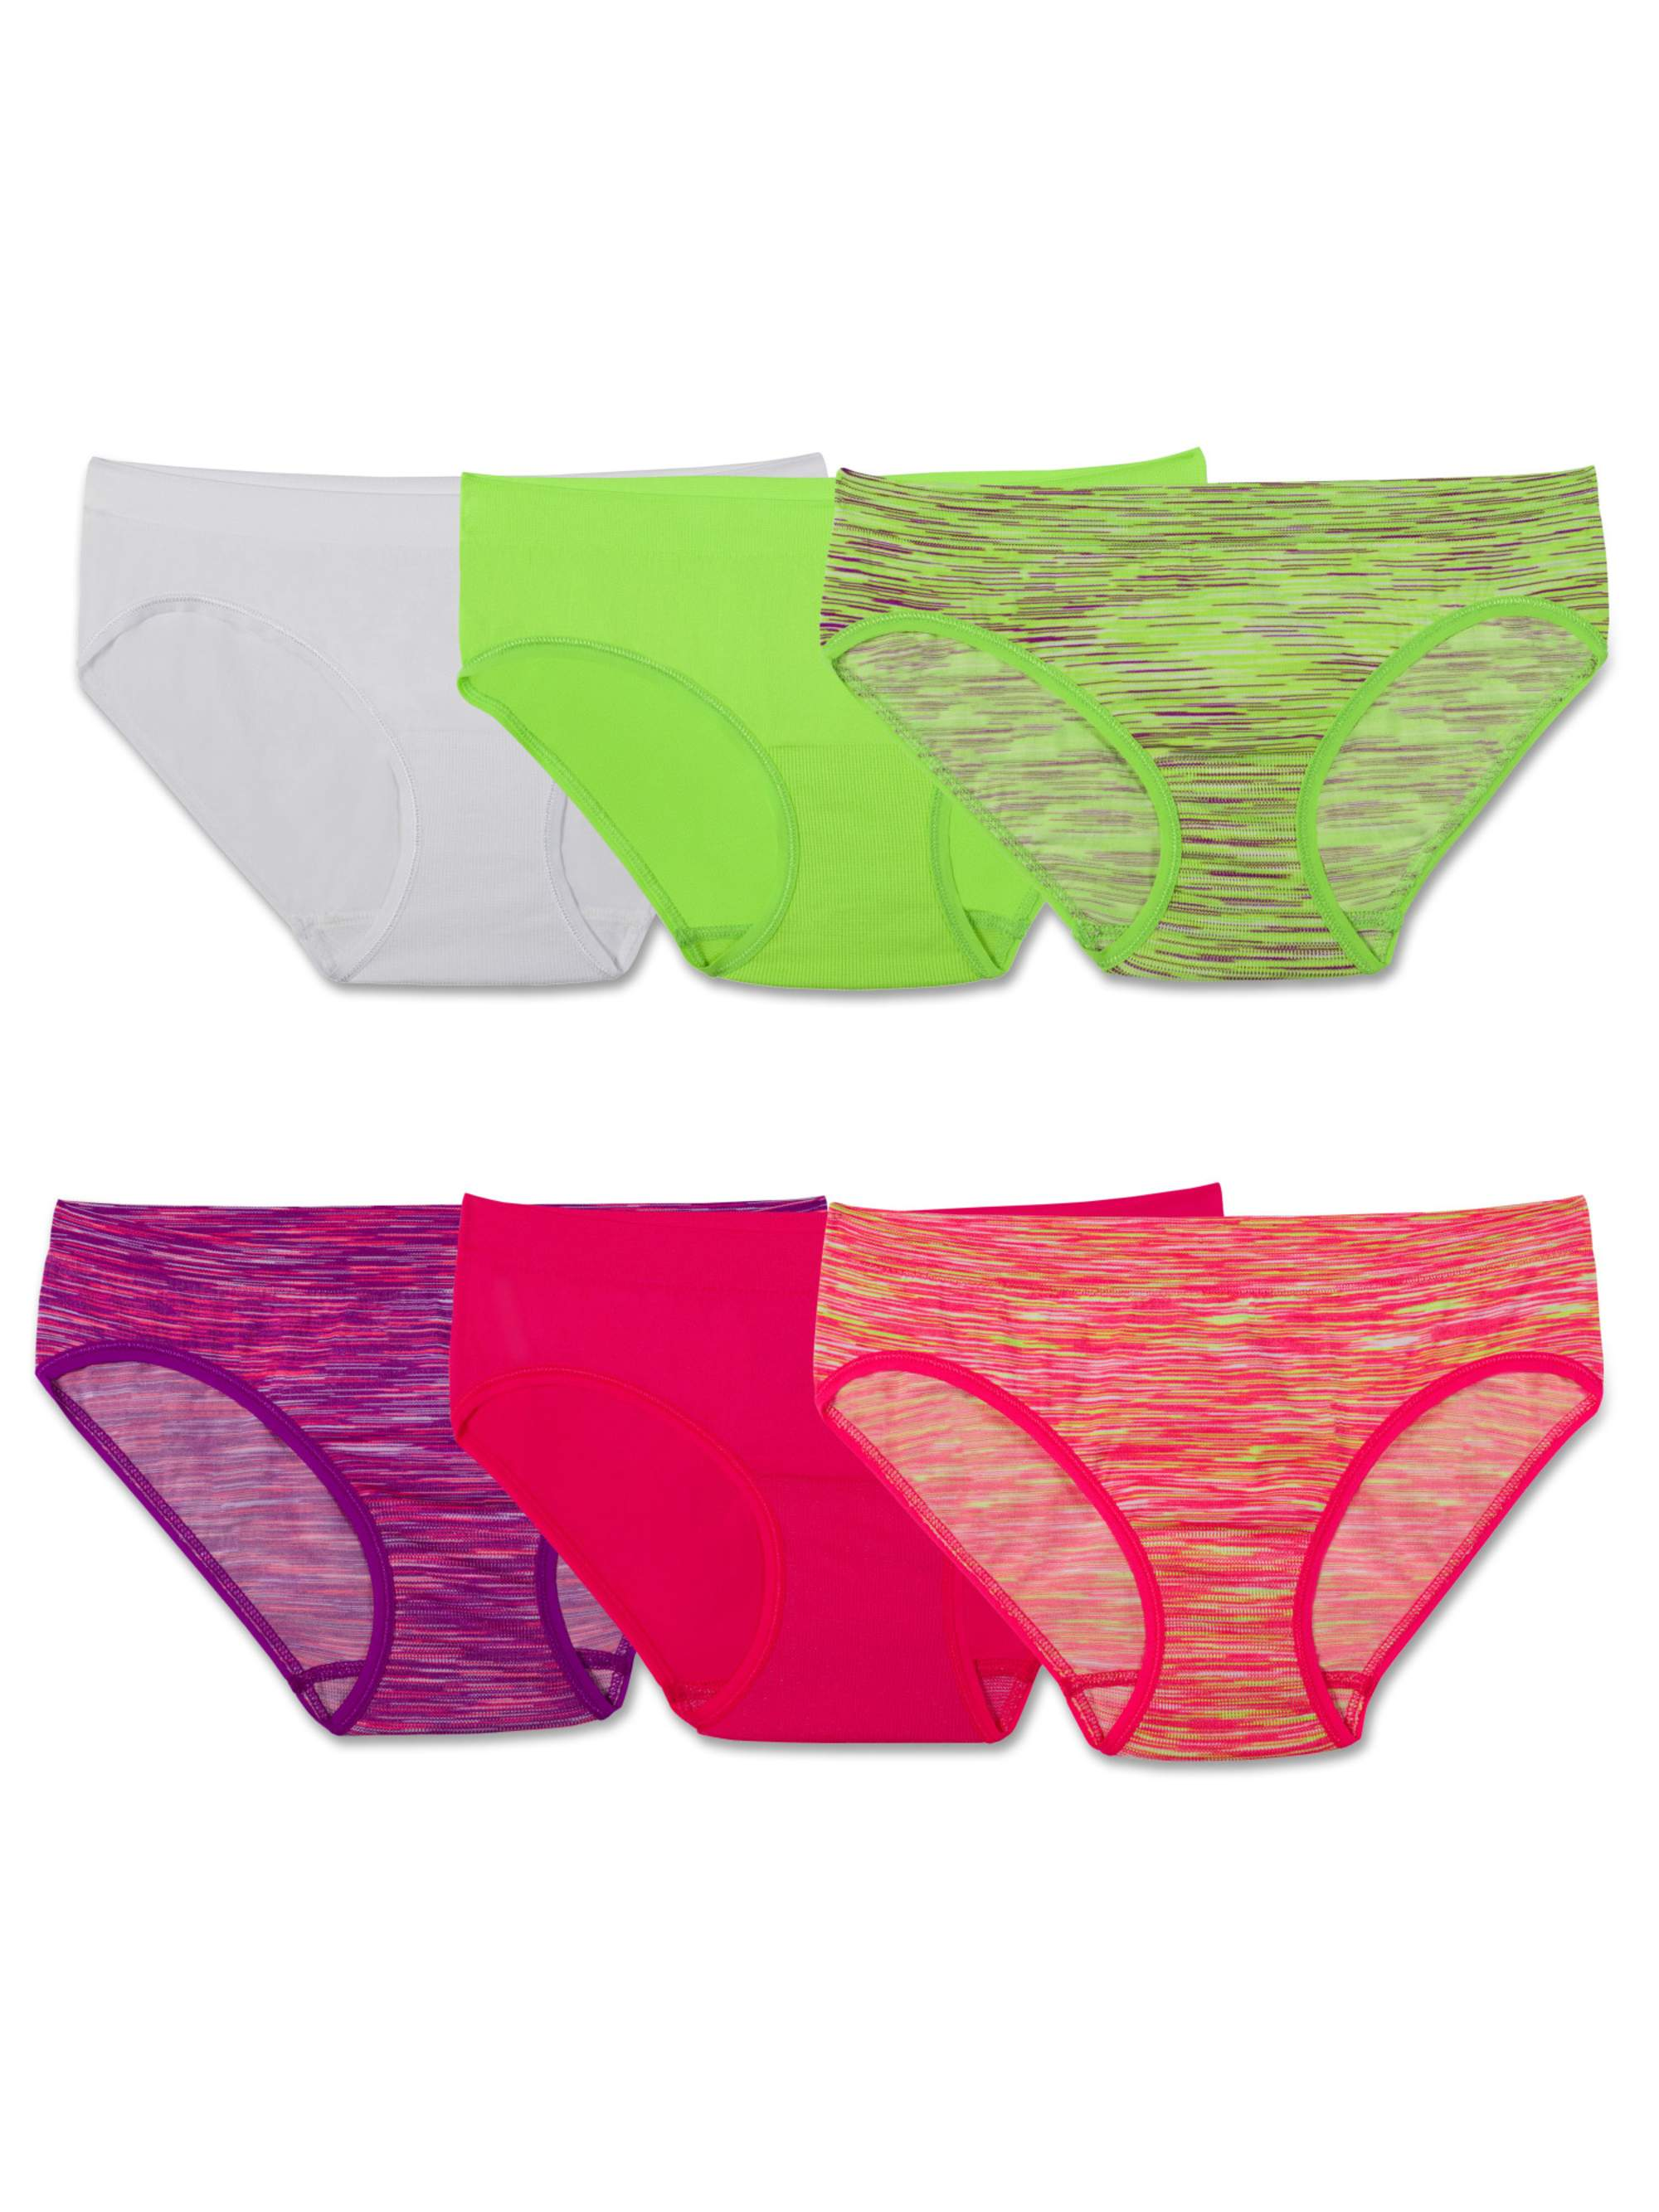 047cd4996fdc Fruit of the Loom - Fruit of the Loom Seamless Assorted Hipsters, 6 Pack  (Big Girls) - Walmart.com